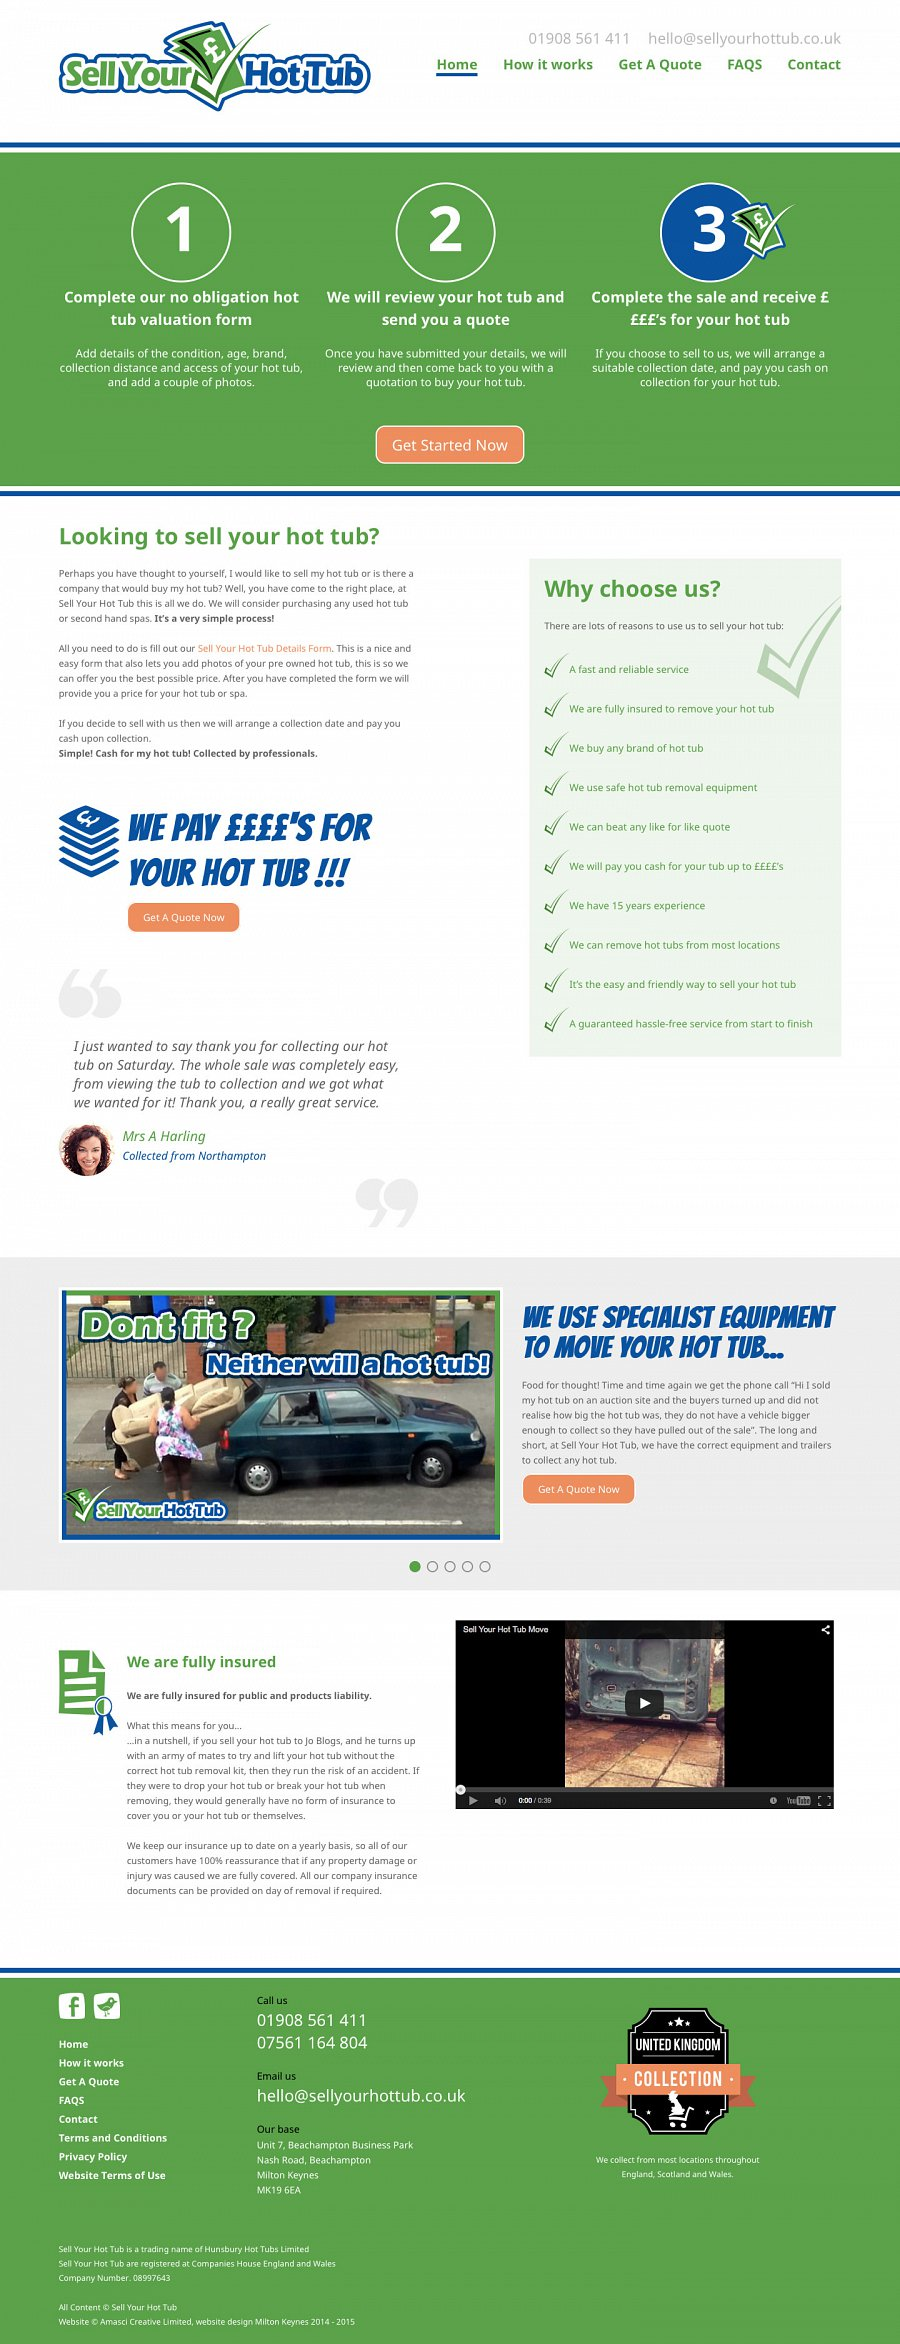 Sell Your Hot Tub Website Screenshot